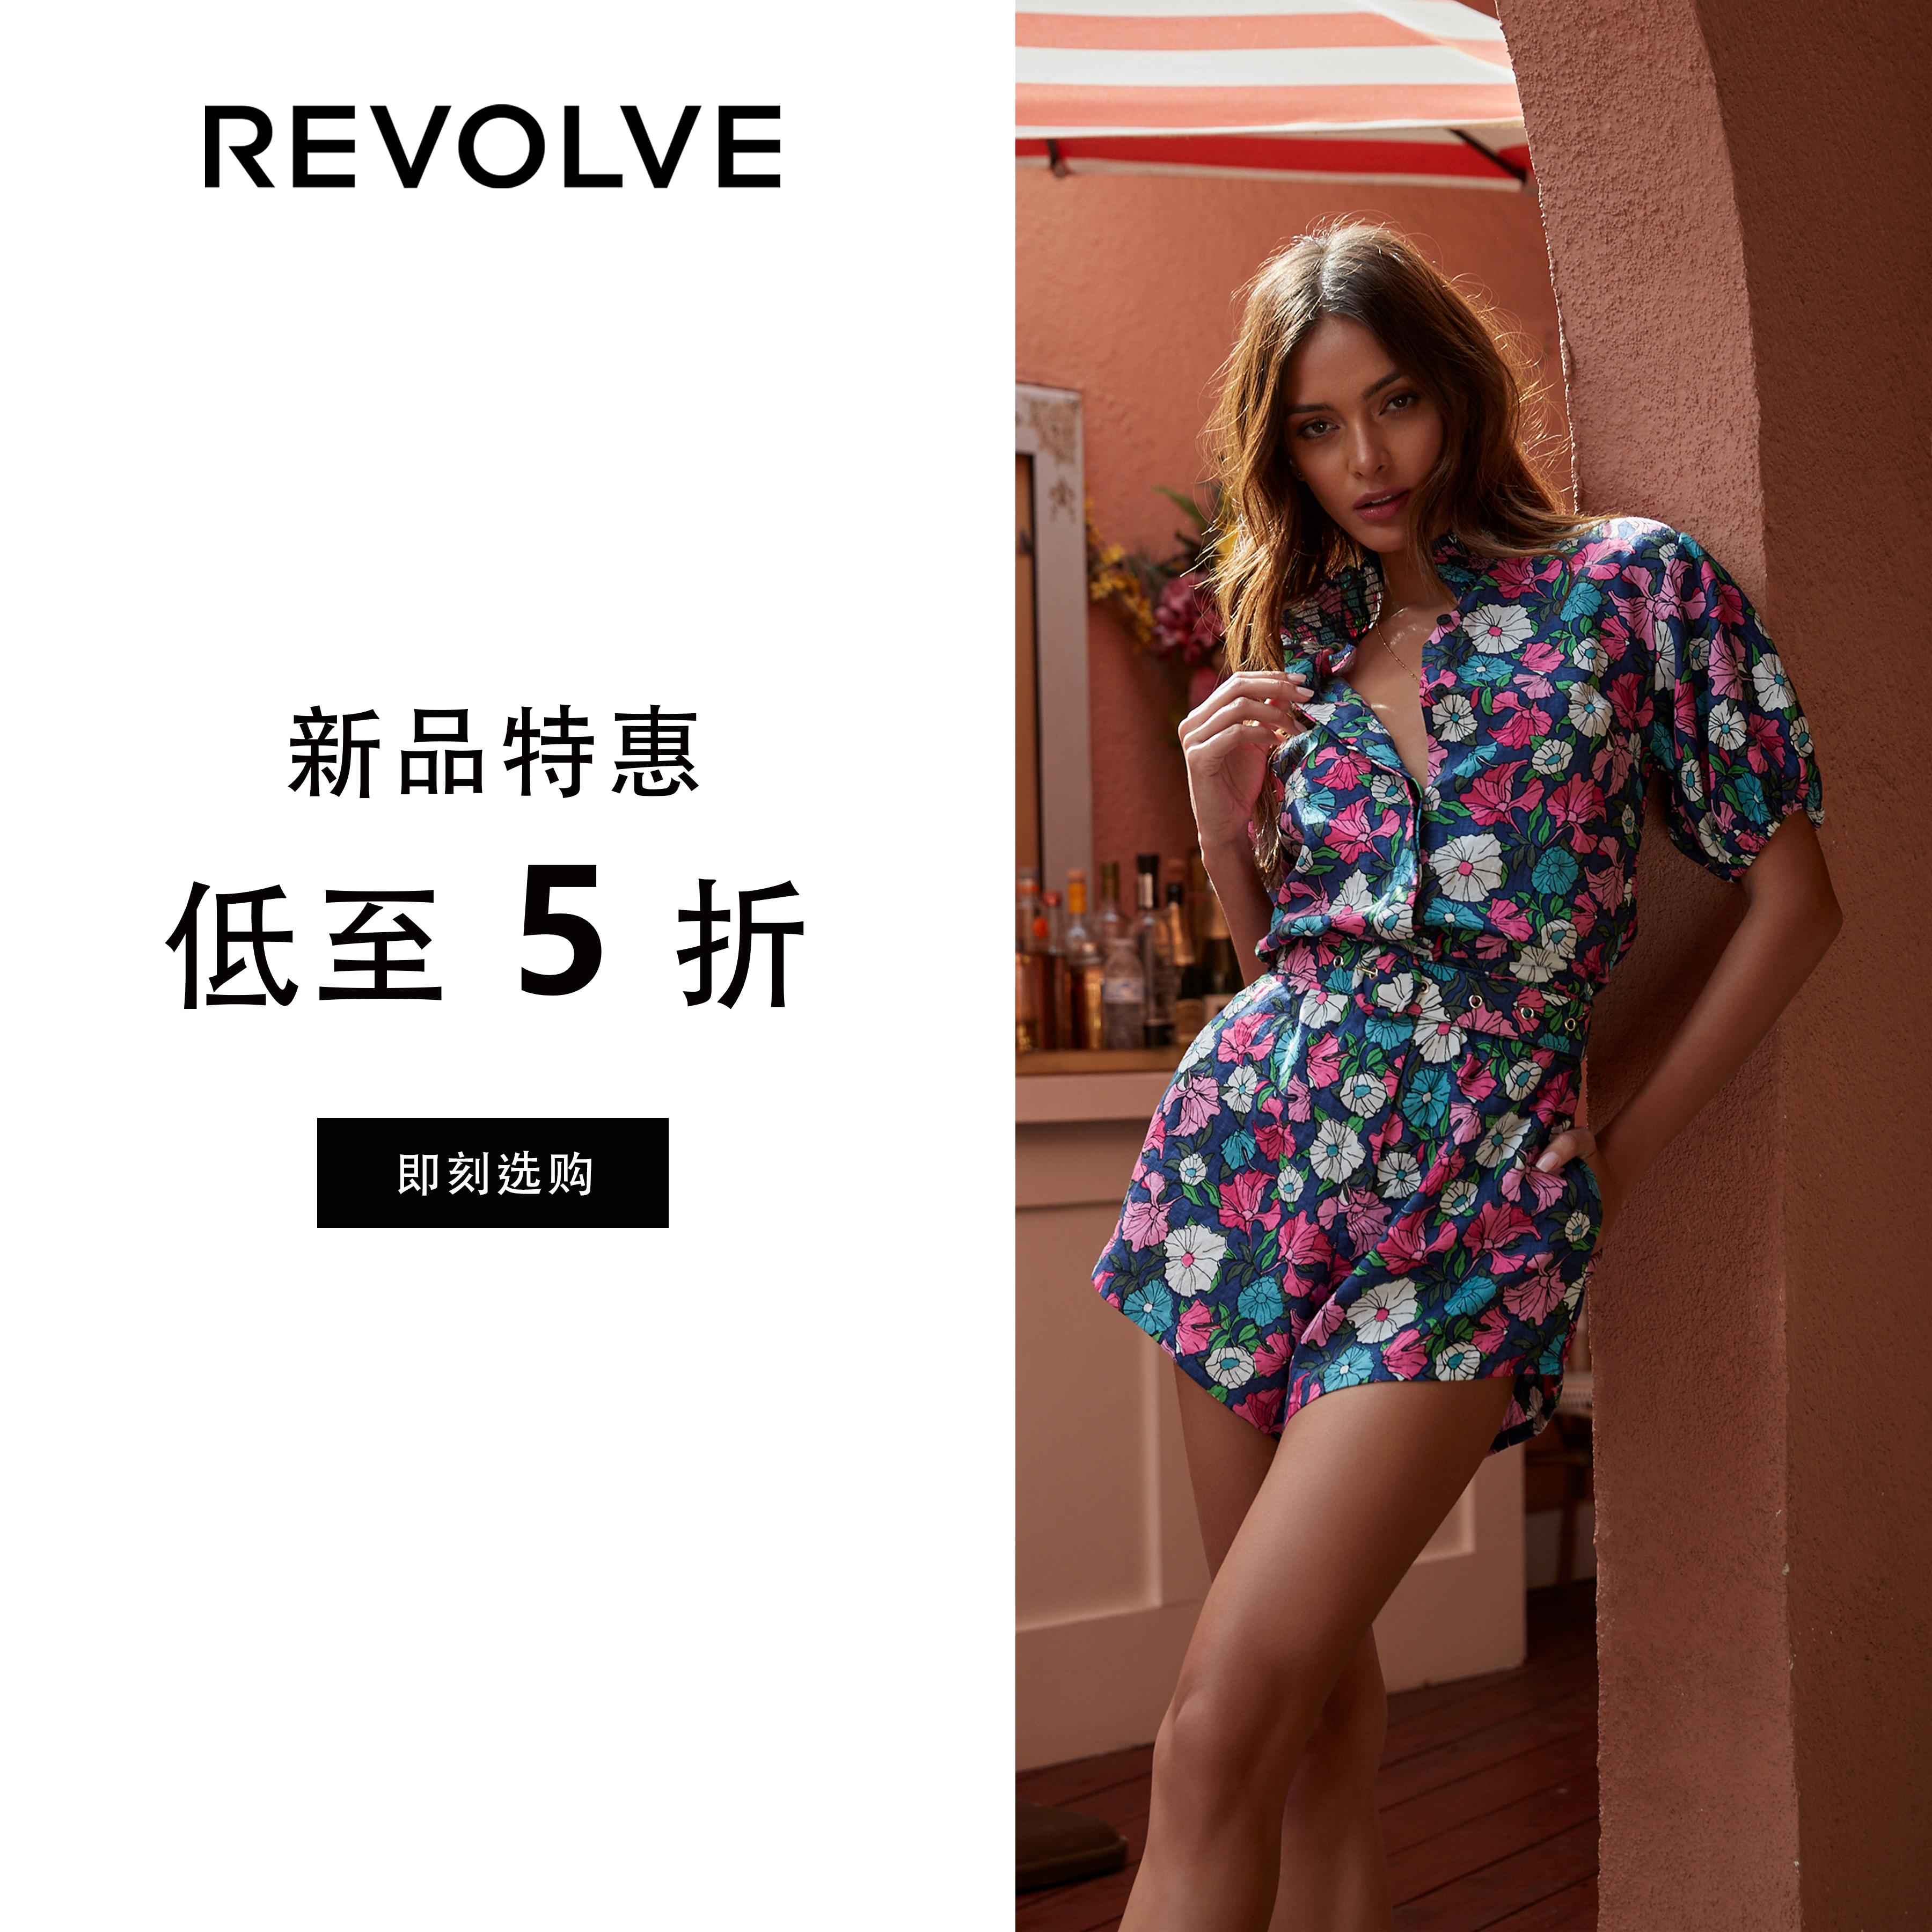 REVOLVE: Up to 50% OFF Sale